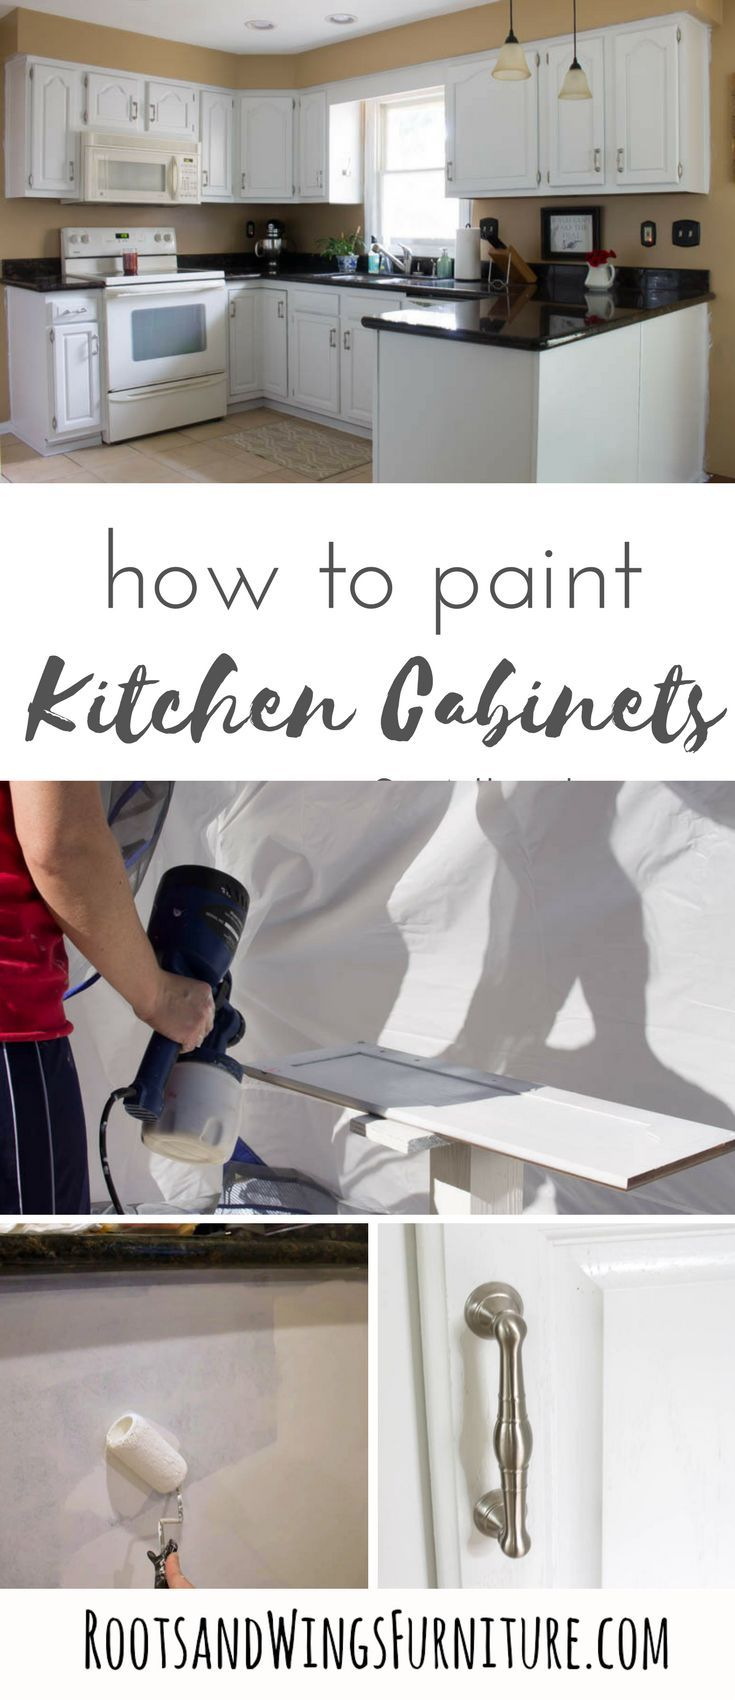 Oak kitchen cabinet makeover using alkyd paint cocinas makeover your kitchen with this painted kitchen cabinet tutorial use the best primer and alkyd solutioingenieria Gallery